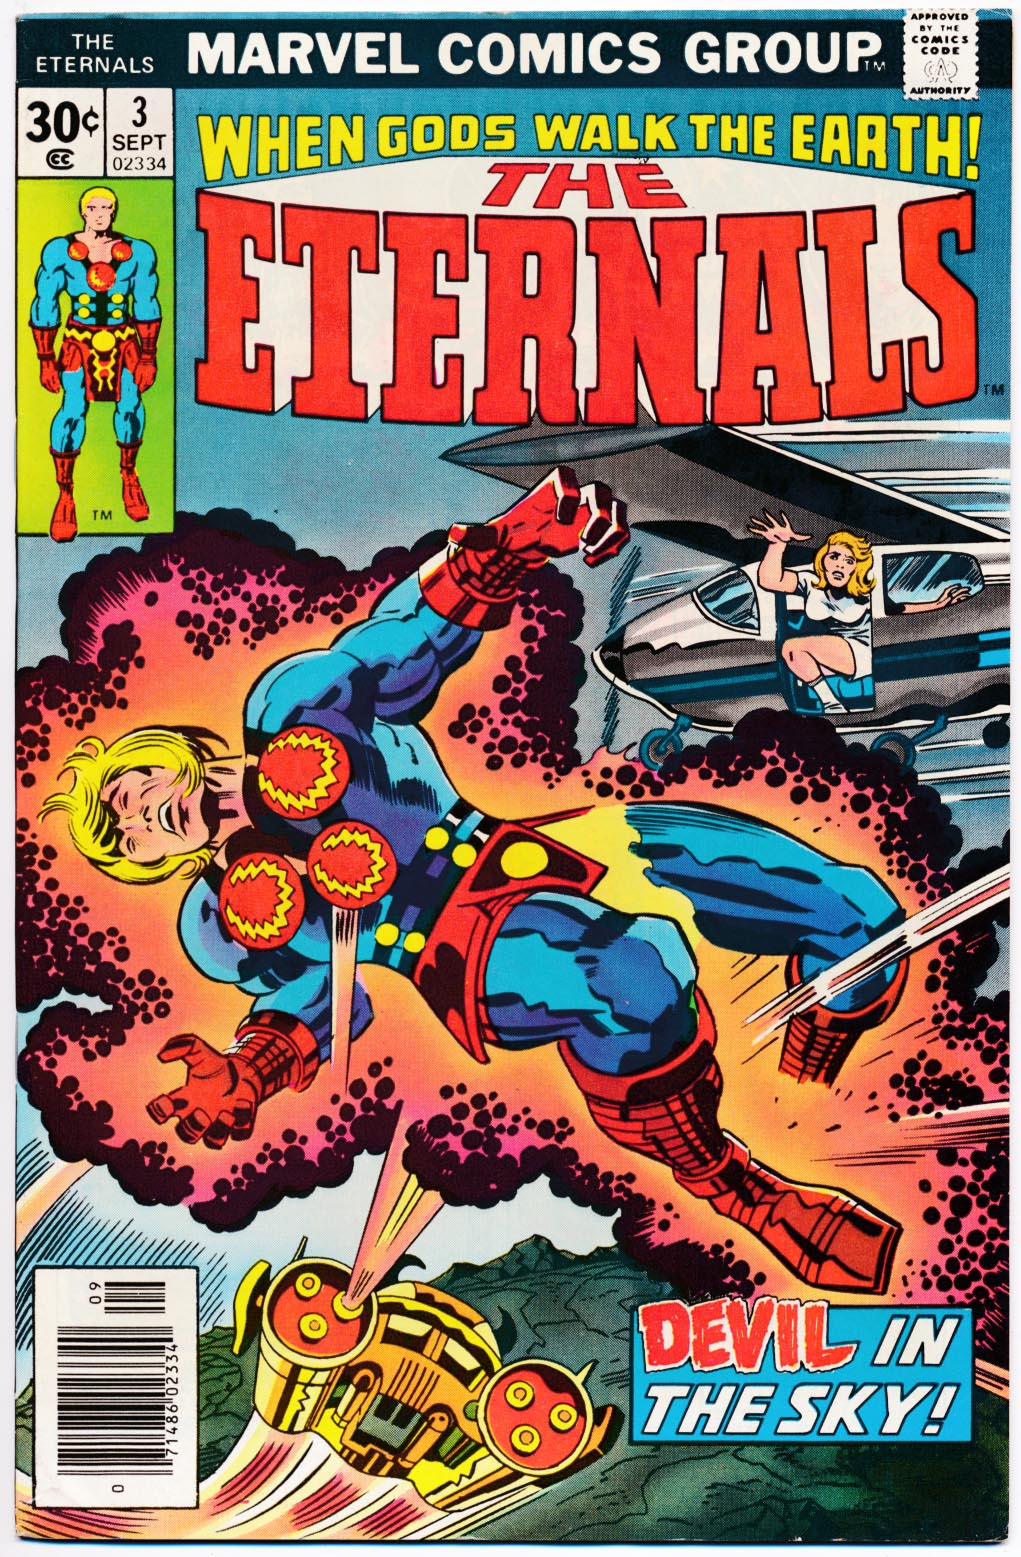 Eternals vol 1 - 3 -VF